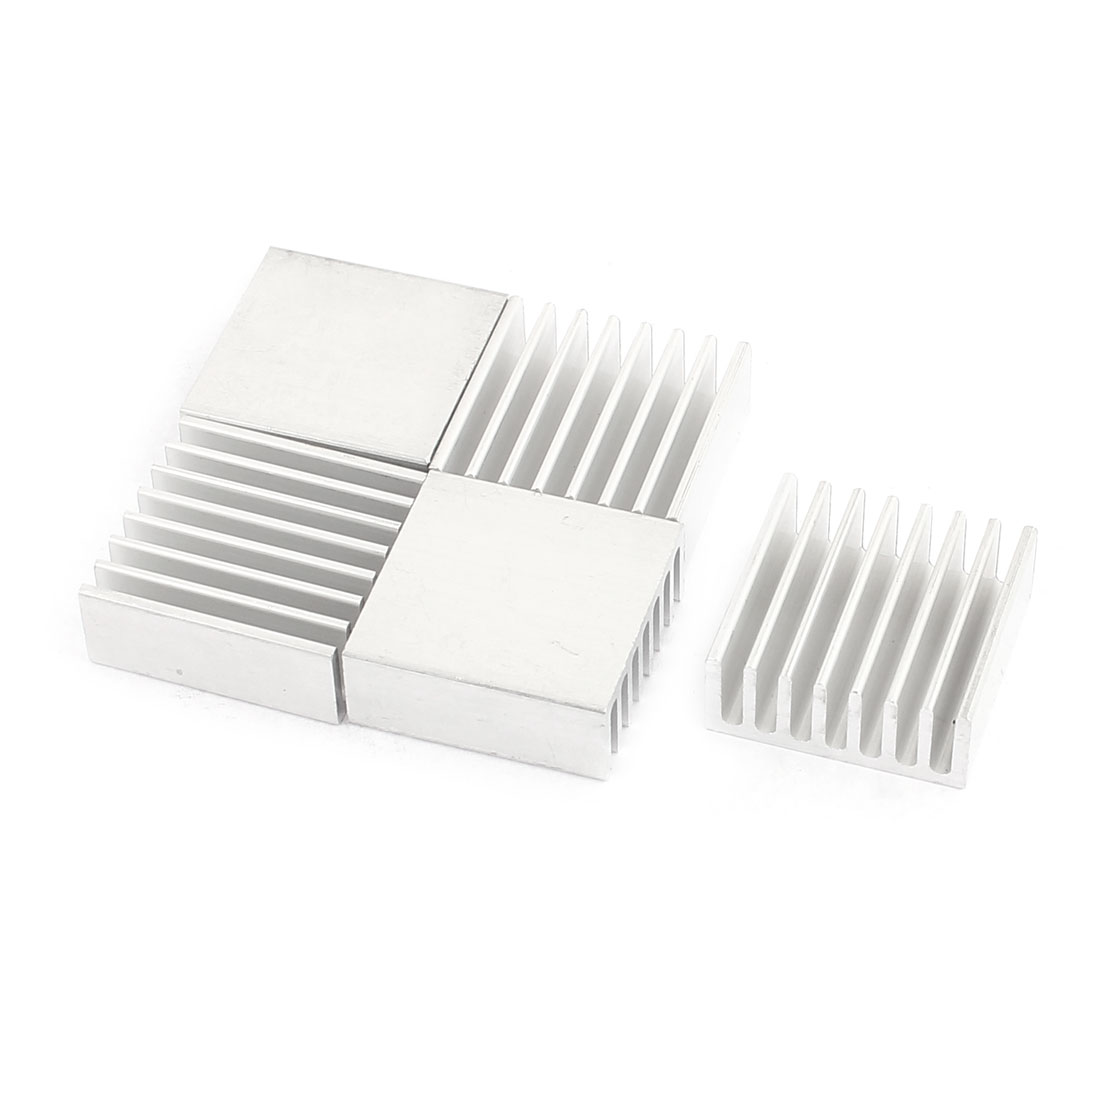 5 Pcs 25 x 25 x 10mm Silver Tone Aluminum Heatsink for LED Power Memory Chip